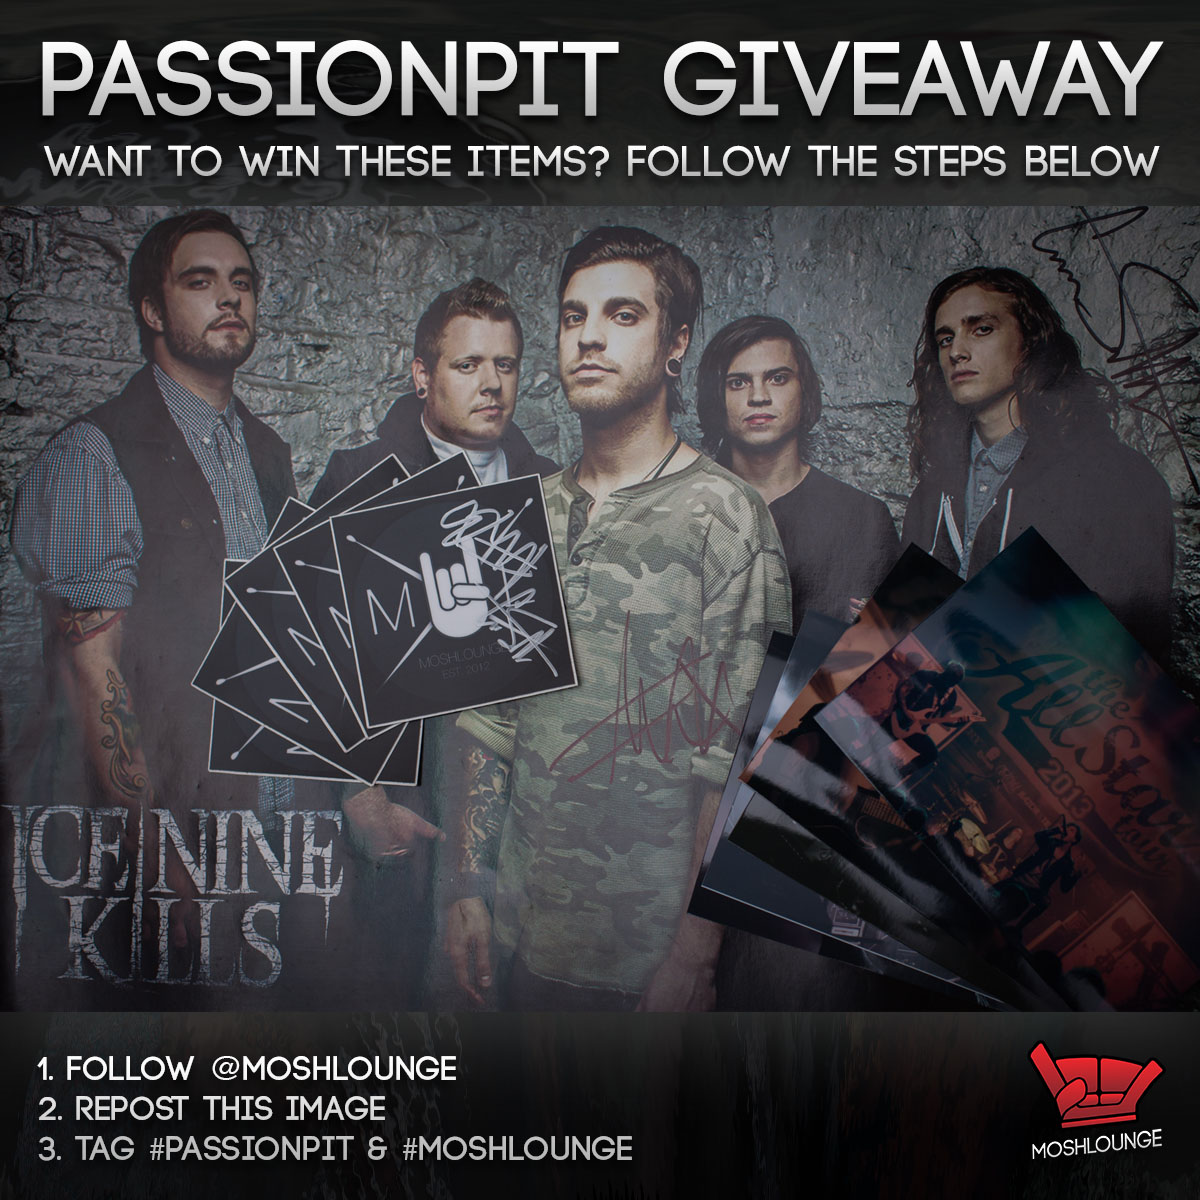 PassionPit Giveaway Instagram